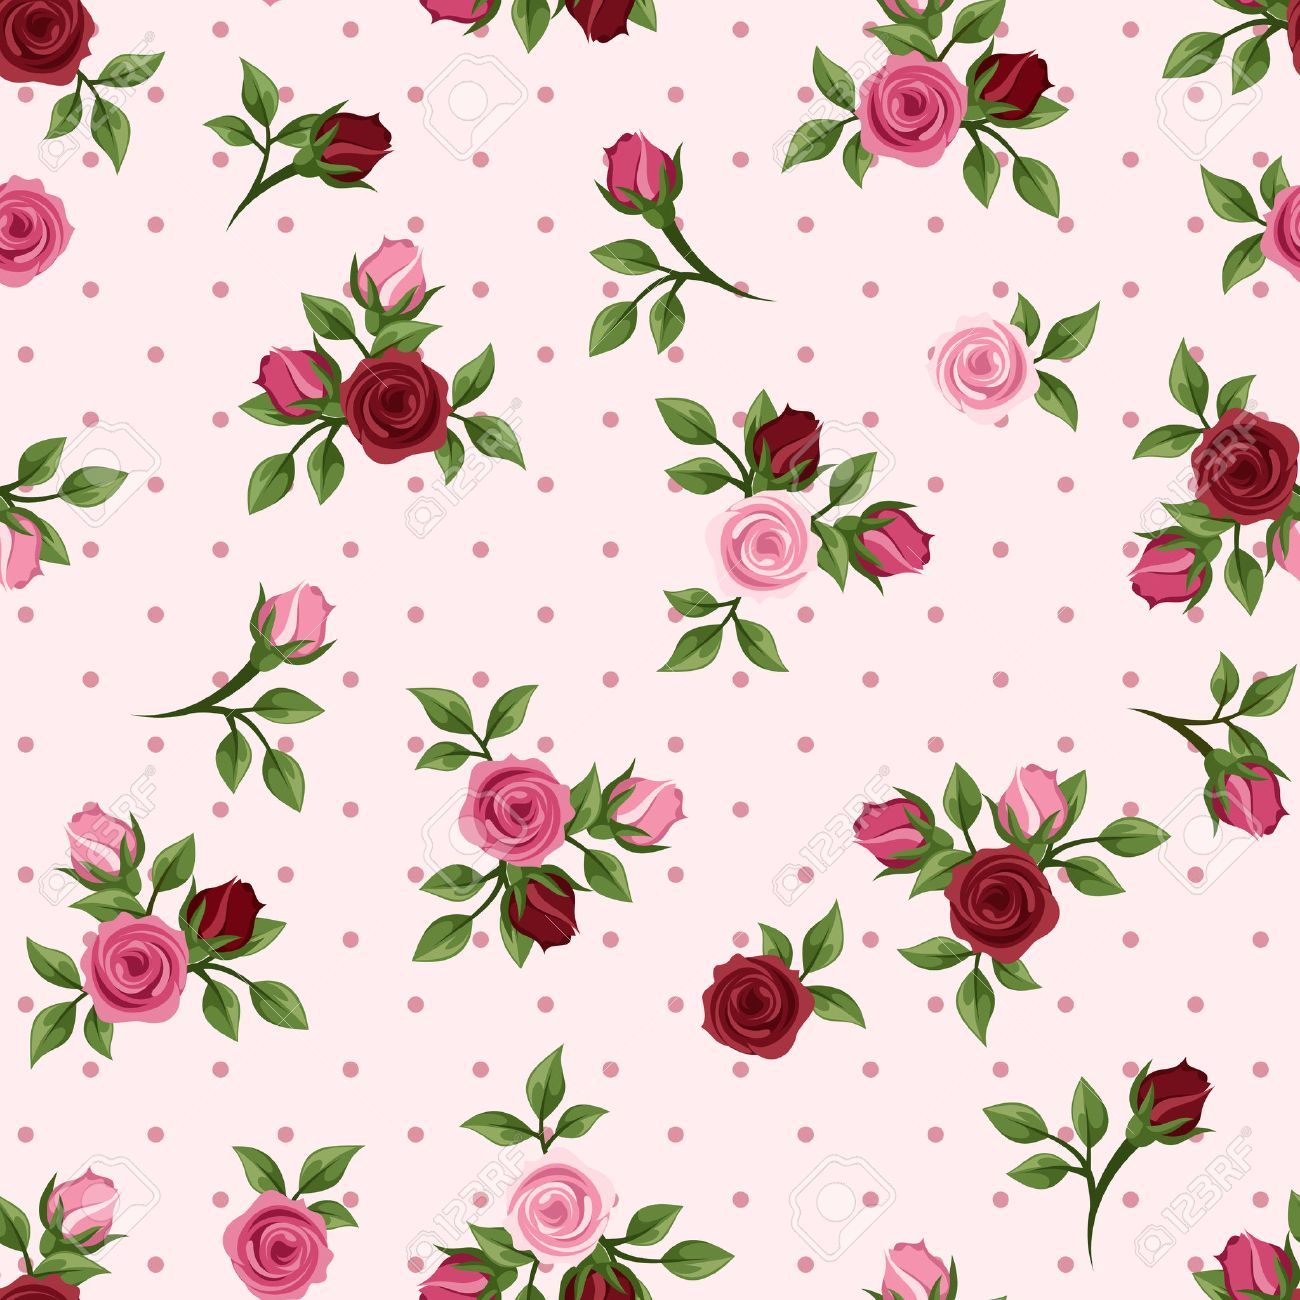 Vintage Seamless Pattern With Red And Pink Roses Vector Illustration Spon Pattern Red Vintage In 2020 Red And Pink Roses Pink Roses Background Aesthetic Roses